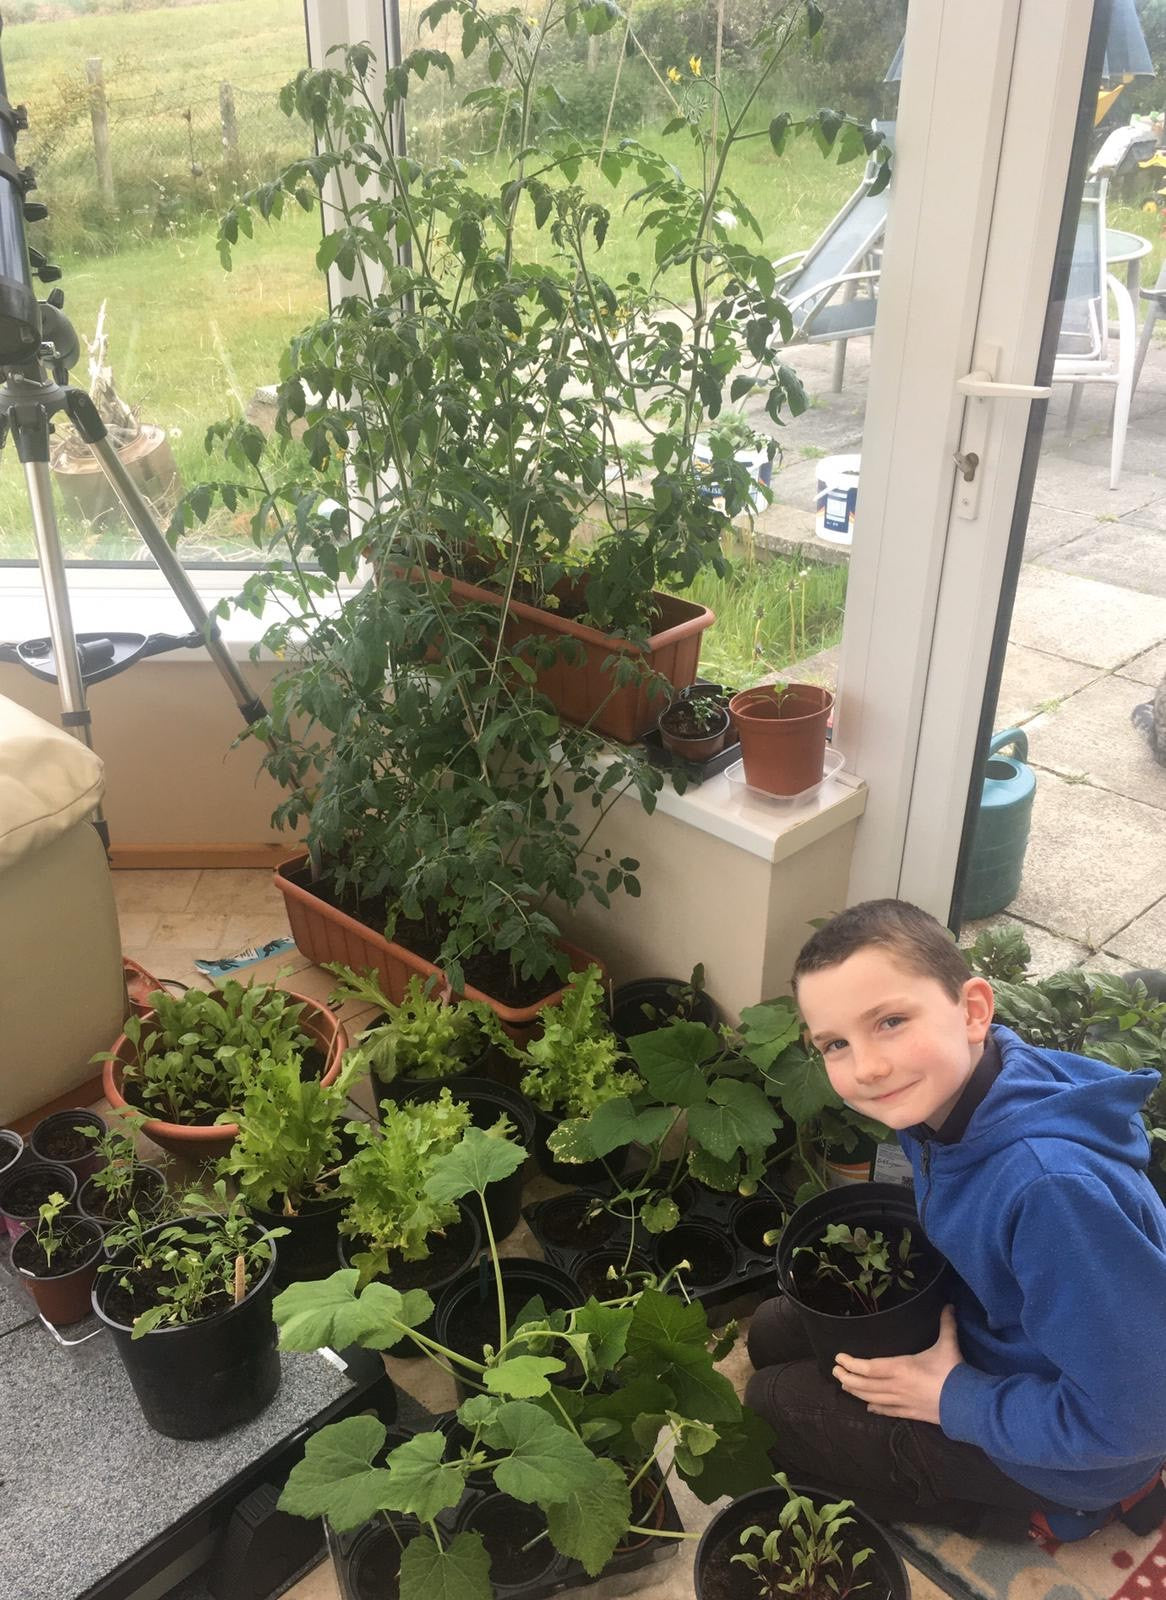 Sinead Kavanagh's 9 year old son enjoying New leaf Compost products during lockdown